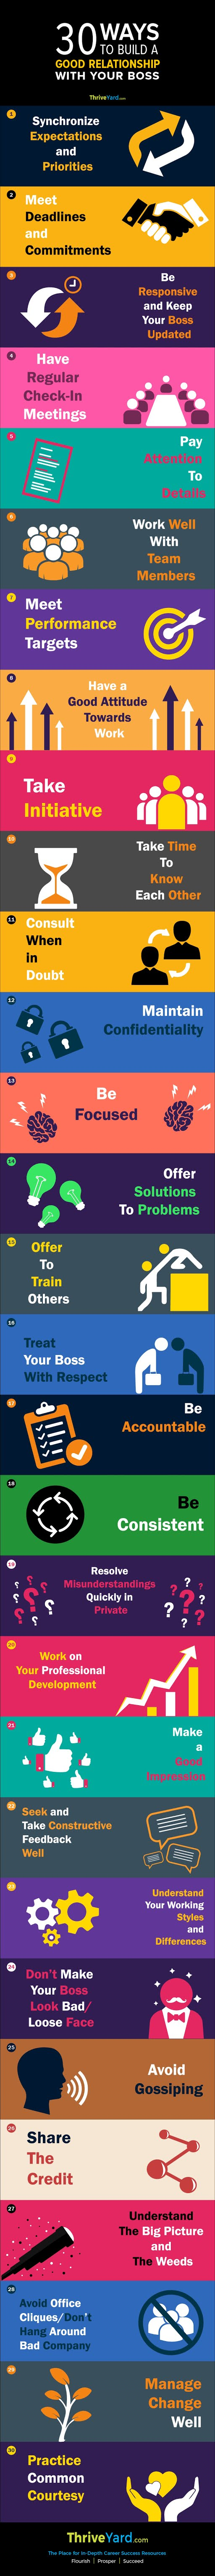 30 Ways To Build A Good Relationship With Your Boss #infographic